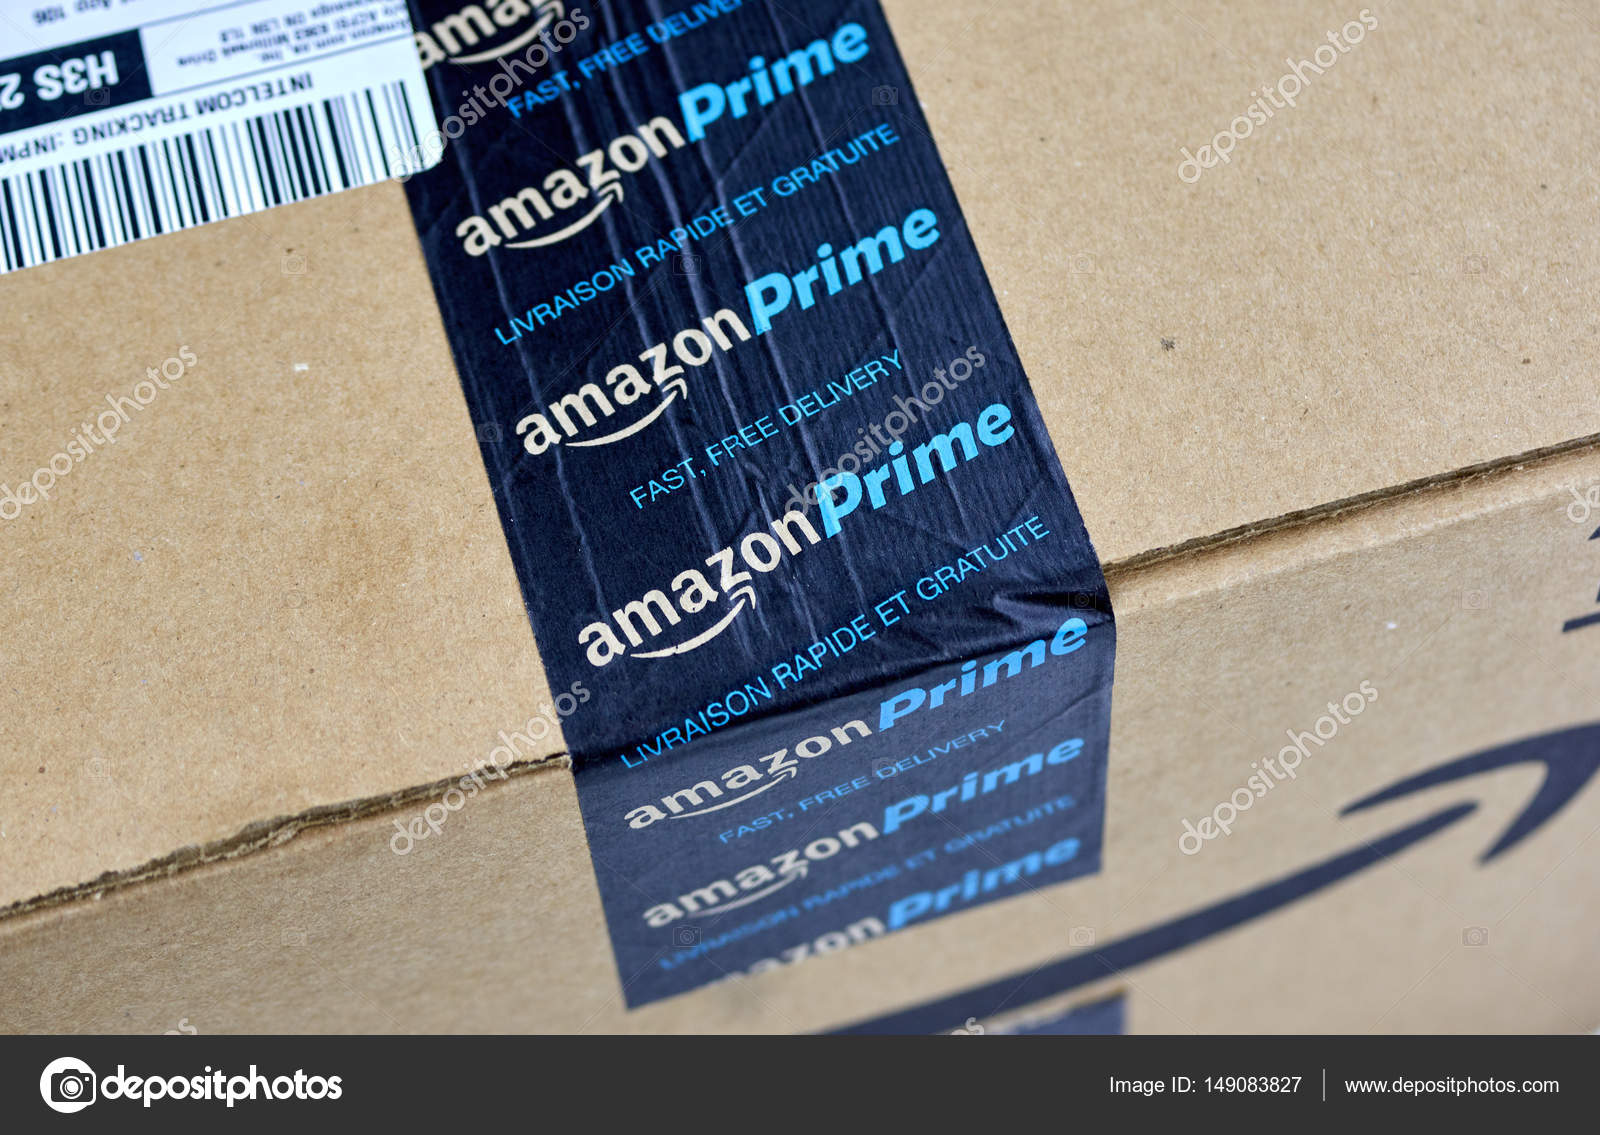 Caixa de transporte do amazon prime fotografia de stock editorial caixa de transporte do amazon prime fotografia de stock reheart Images